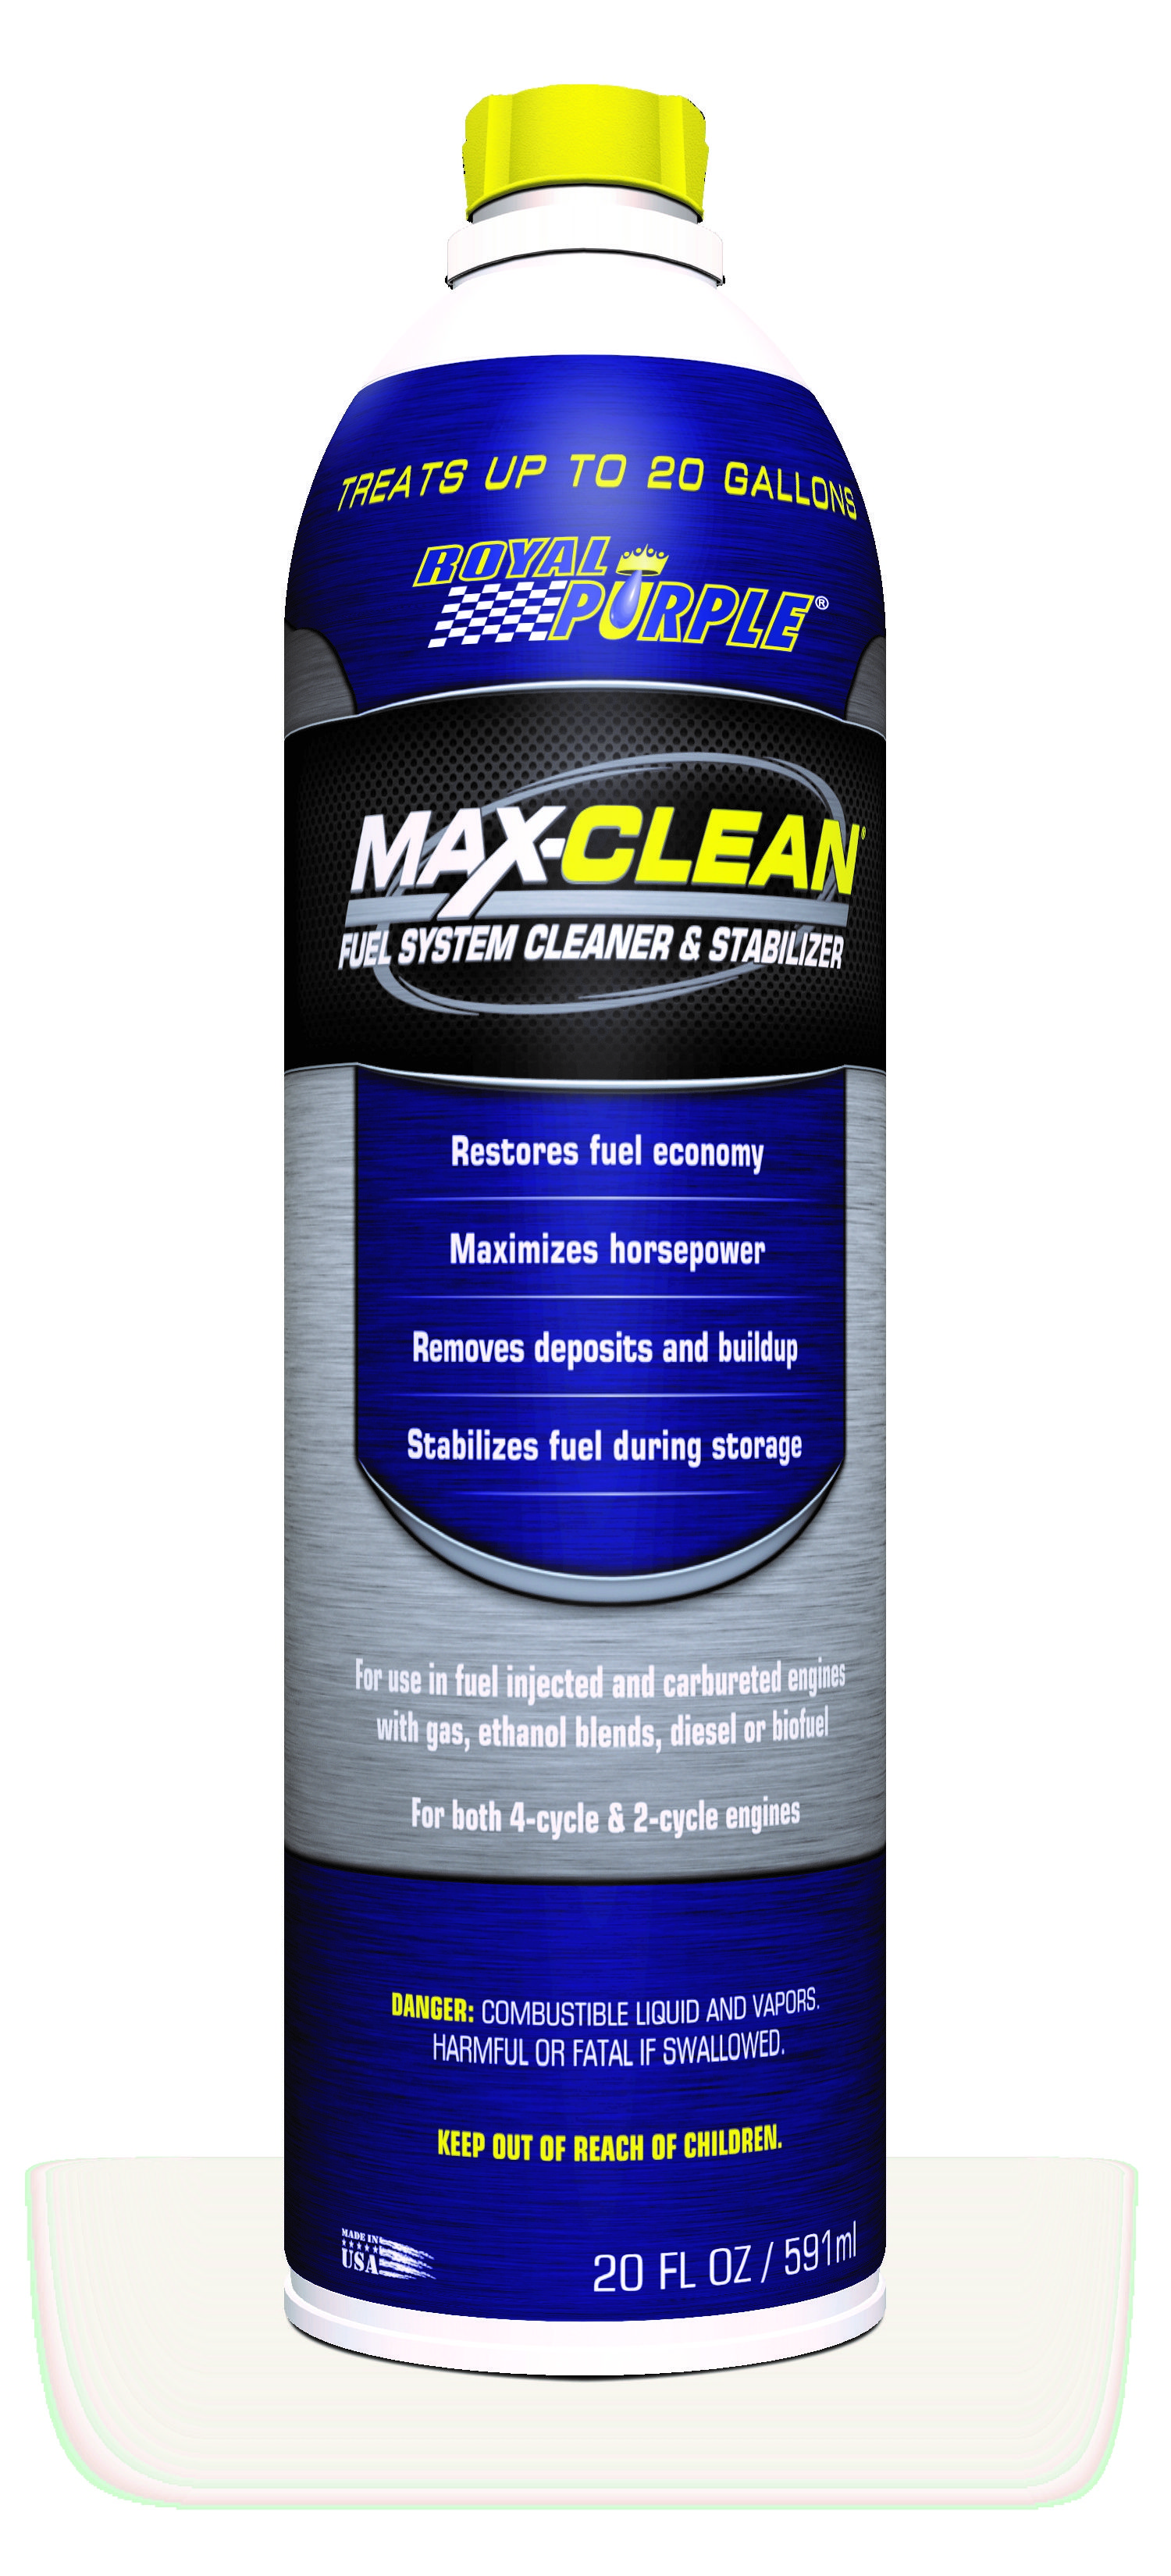 Royal Purple Introduces A New Fuel System Cleaner Max Clean Cleans Injectors Restores Fuel Economy And Reduces Both Eng Fuel Economy Synthetic Oil Automotive